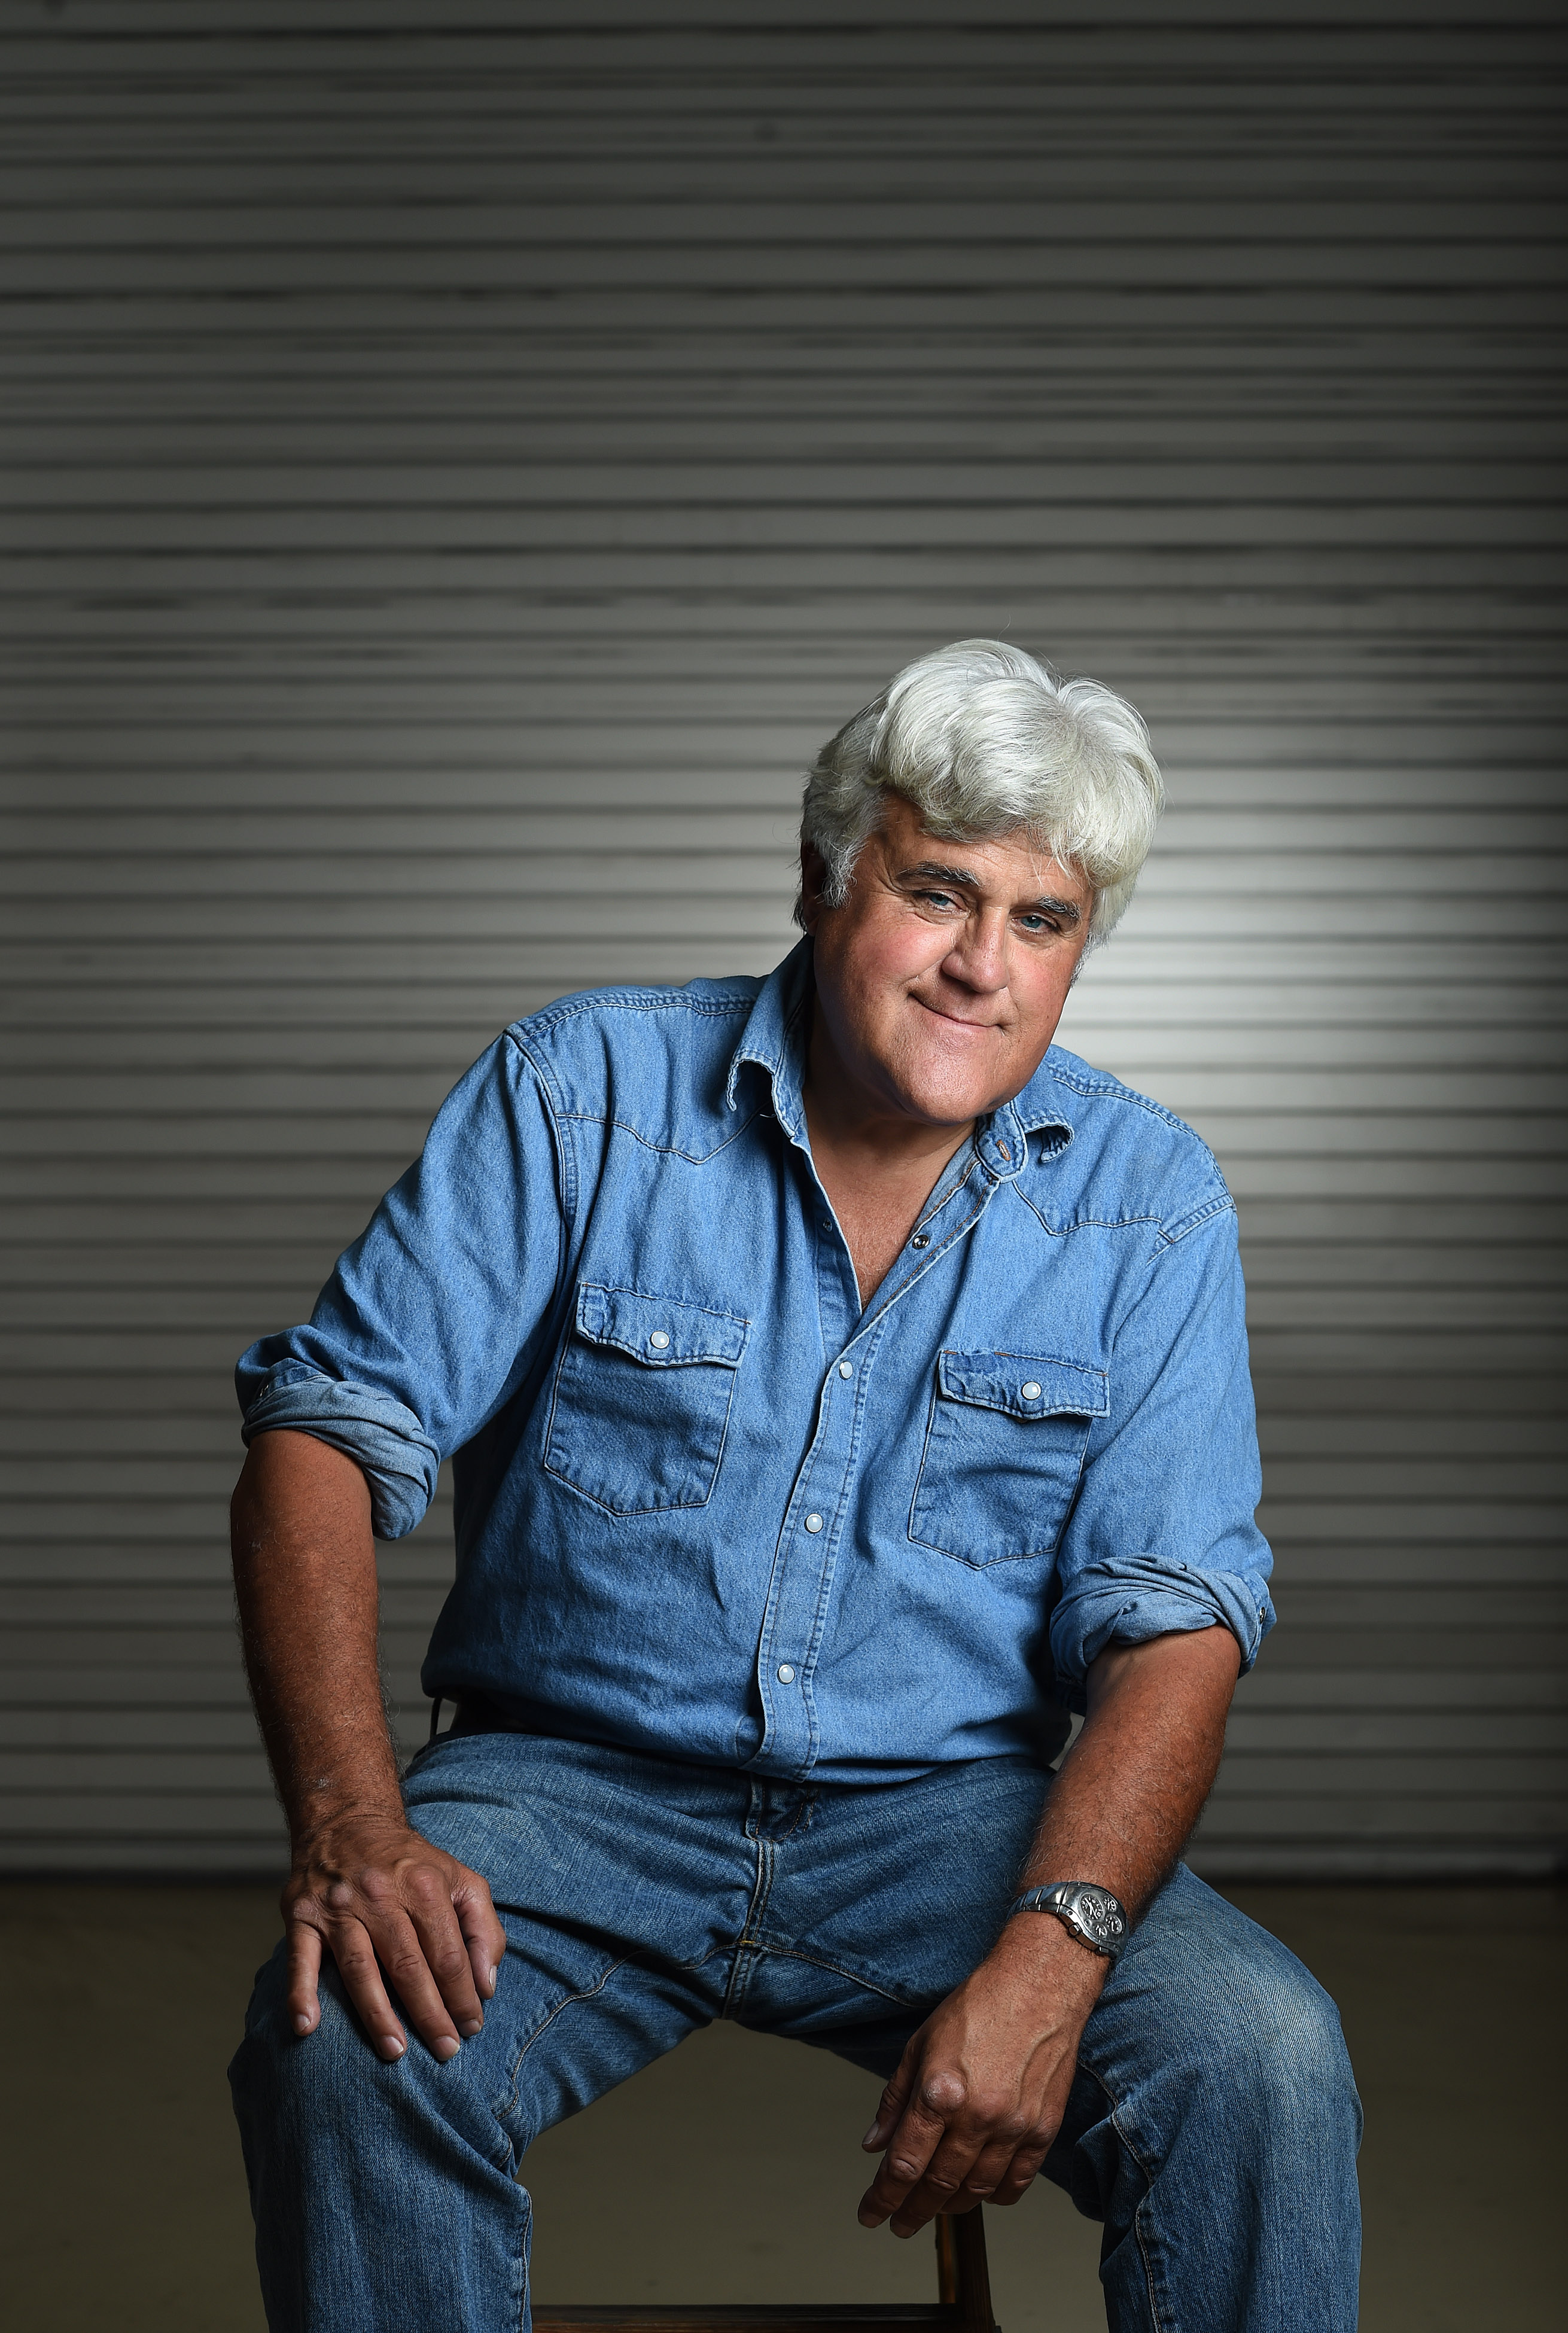 Jay Leno poses for a portrait at his car garage on Sept. 24, 2014 in Burbank, Calif.